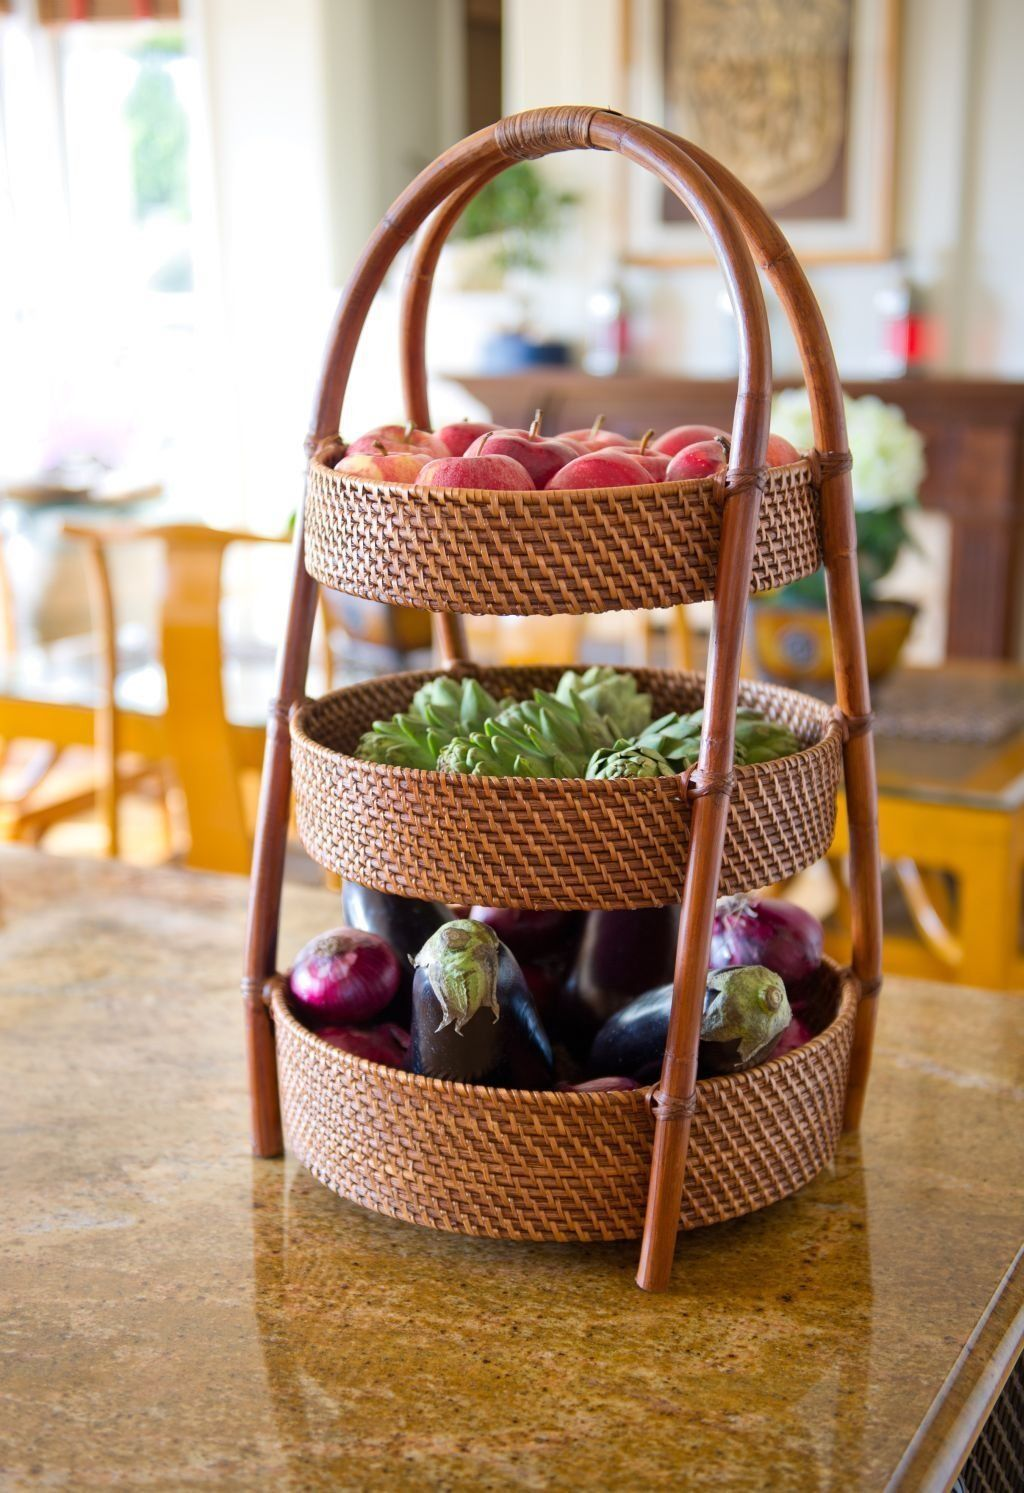 Kitchen Counter Fruit Vegetable Basket Organizer Storage Three Tier Woven New Ebay